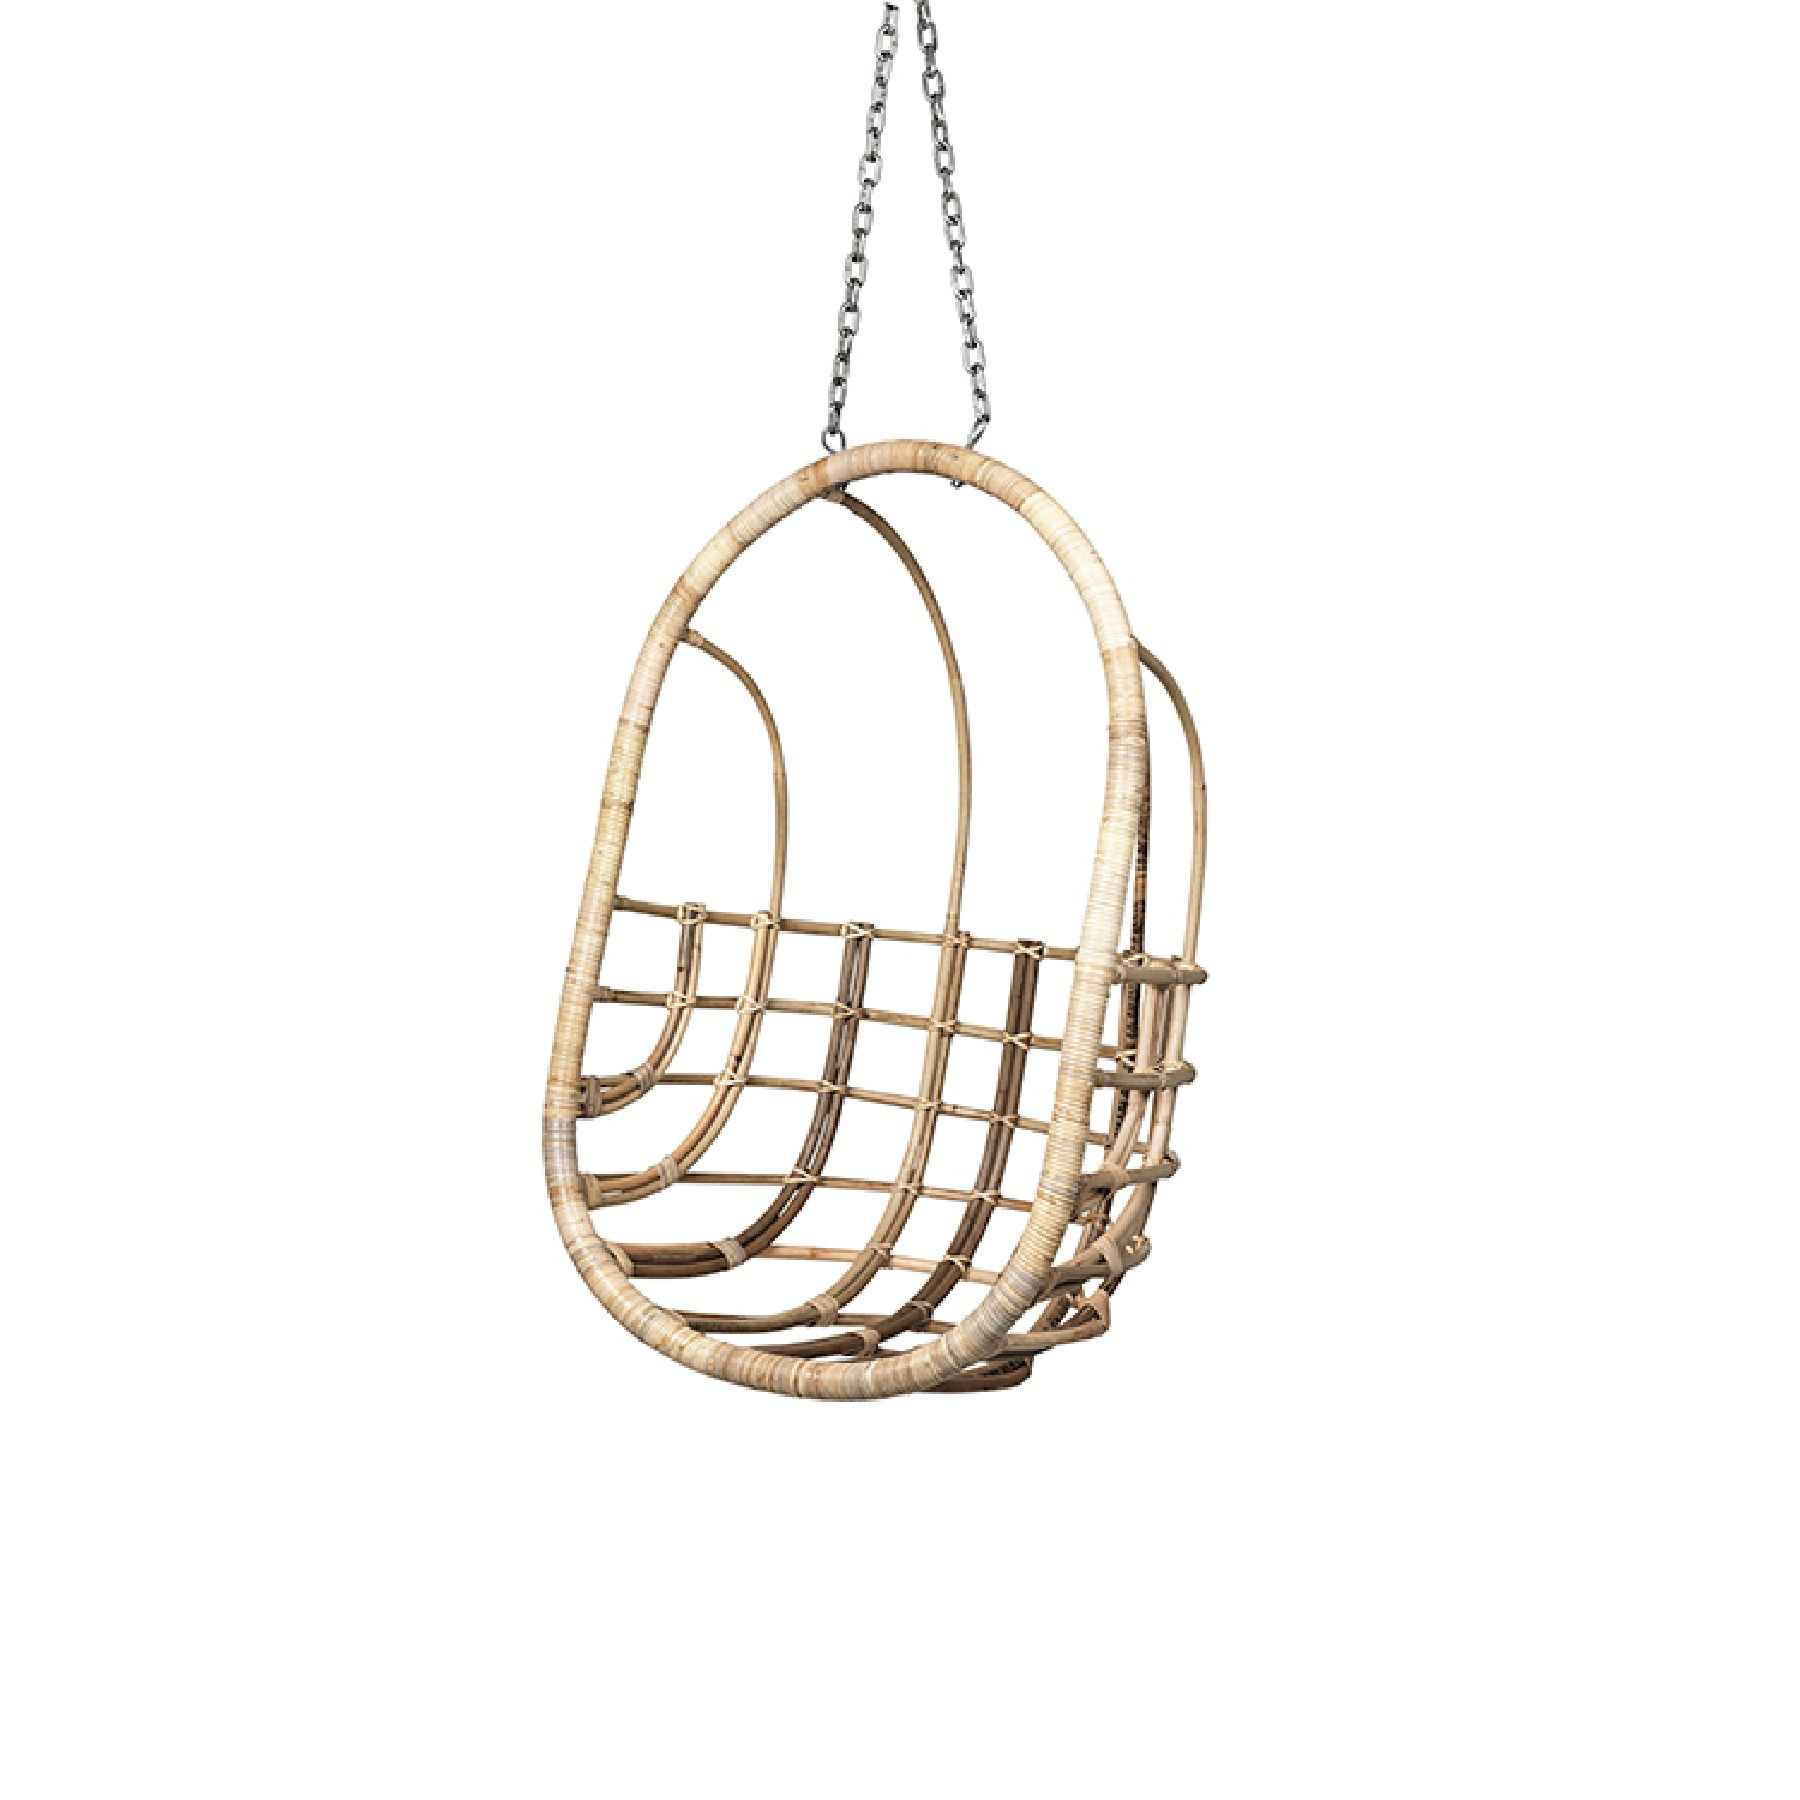 image-MARCEL HANGING CHAIR